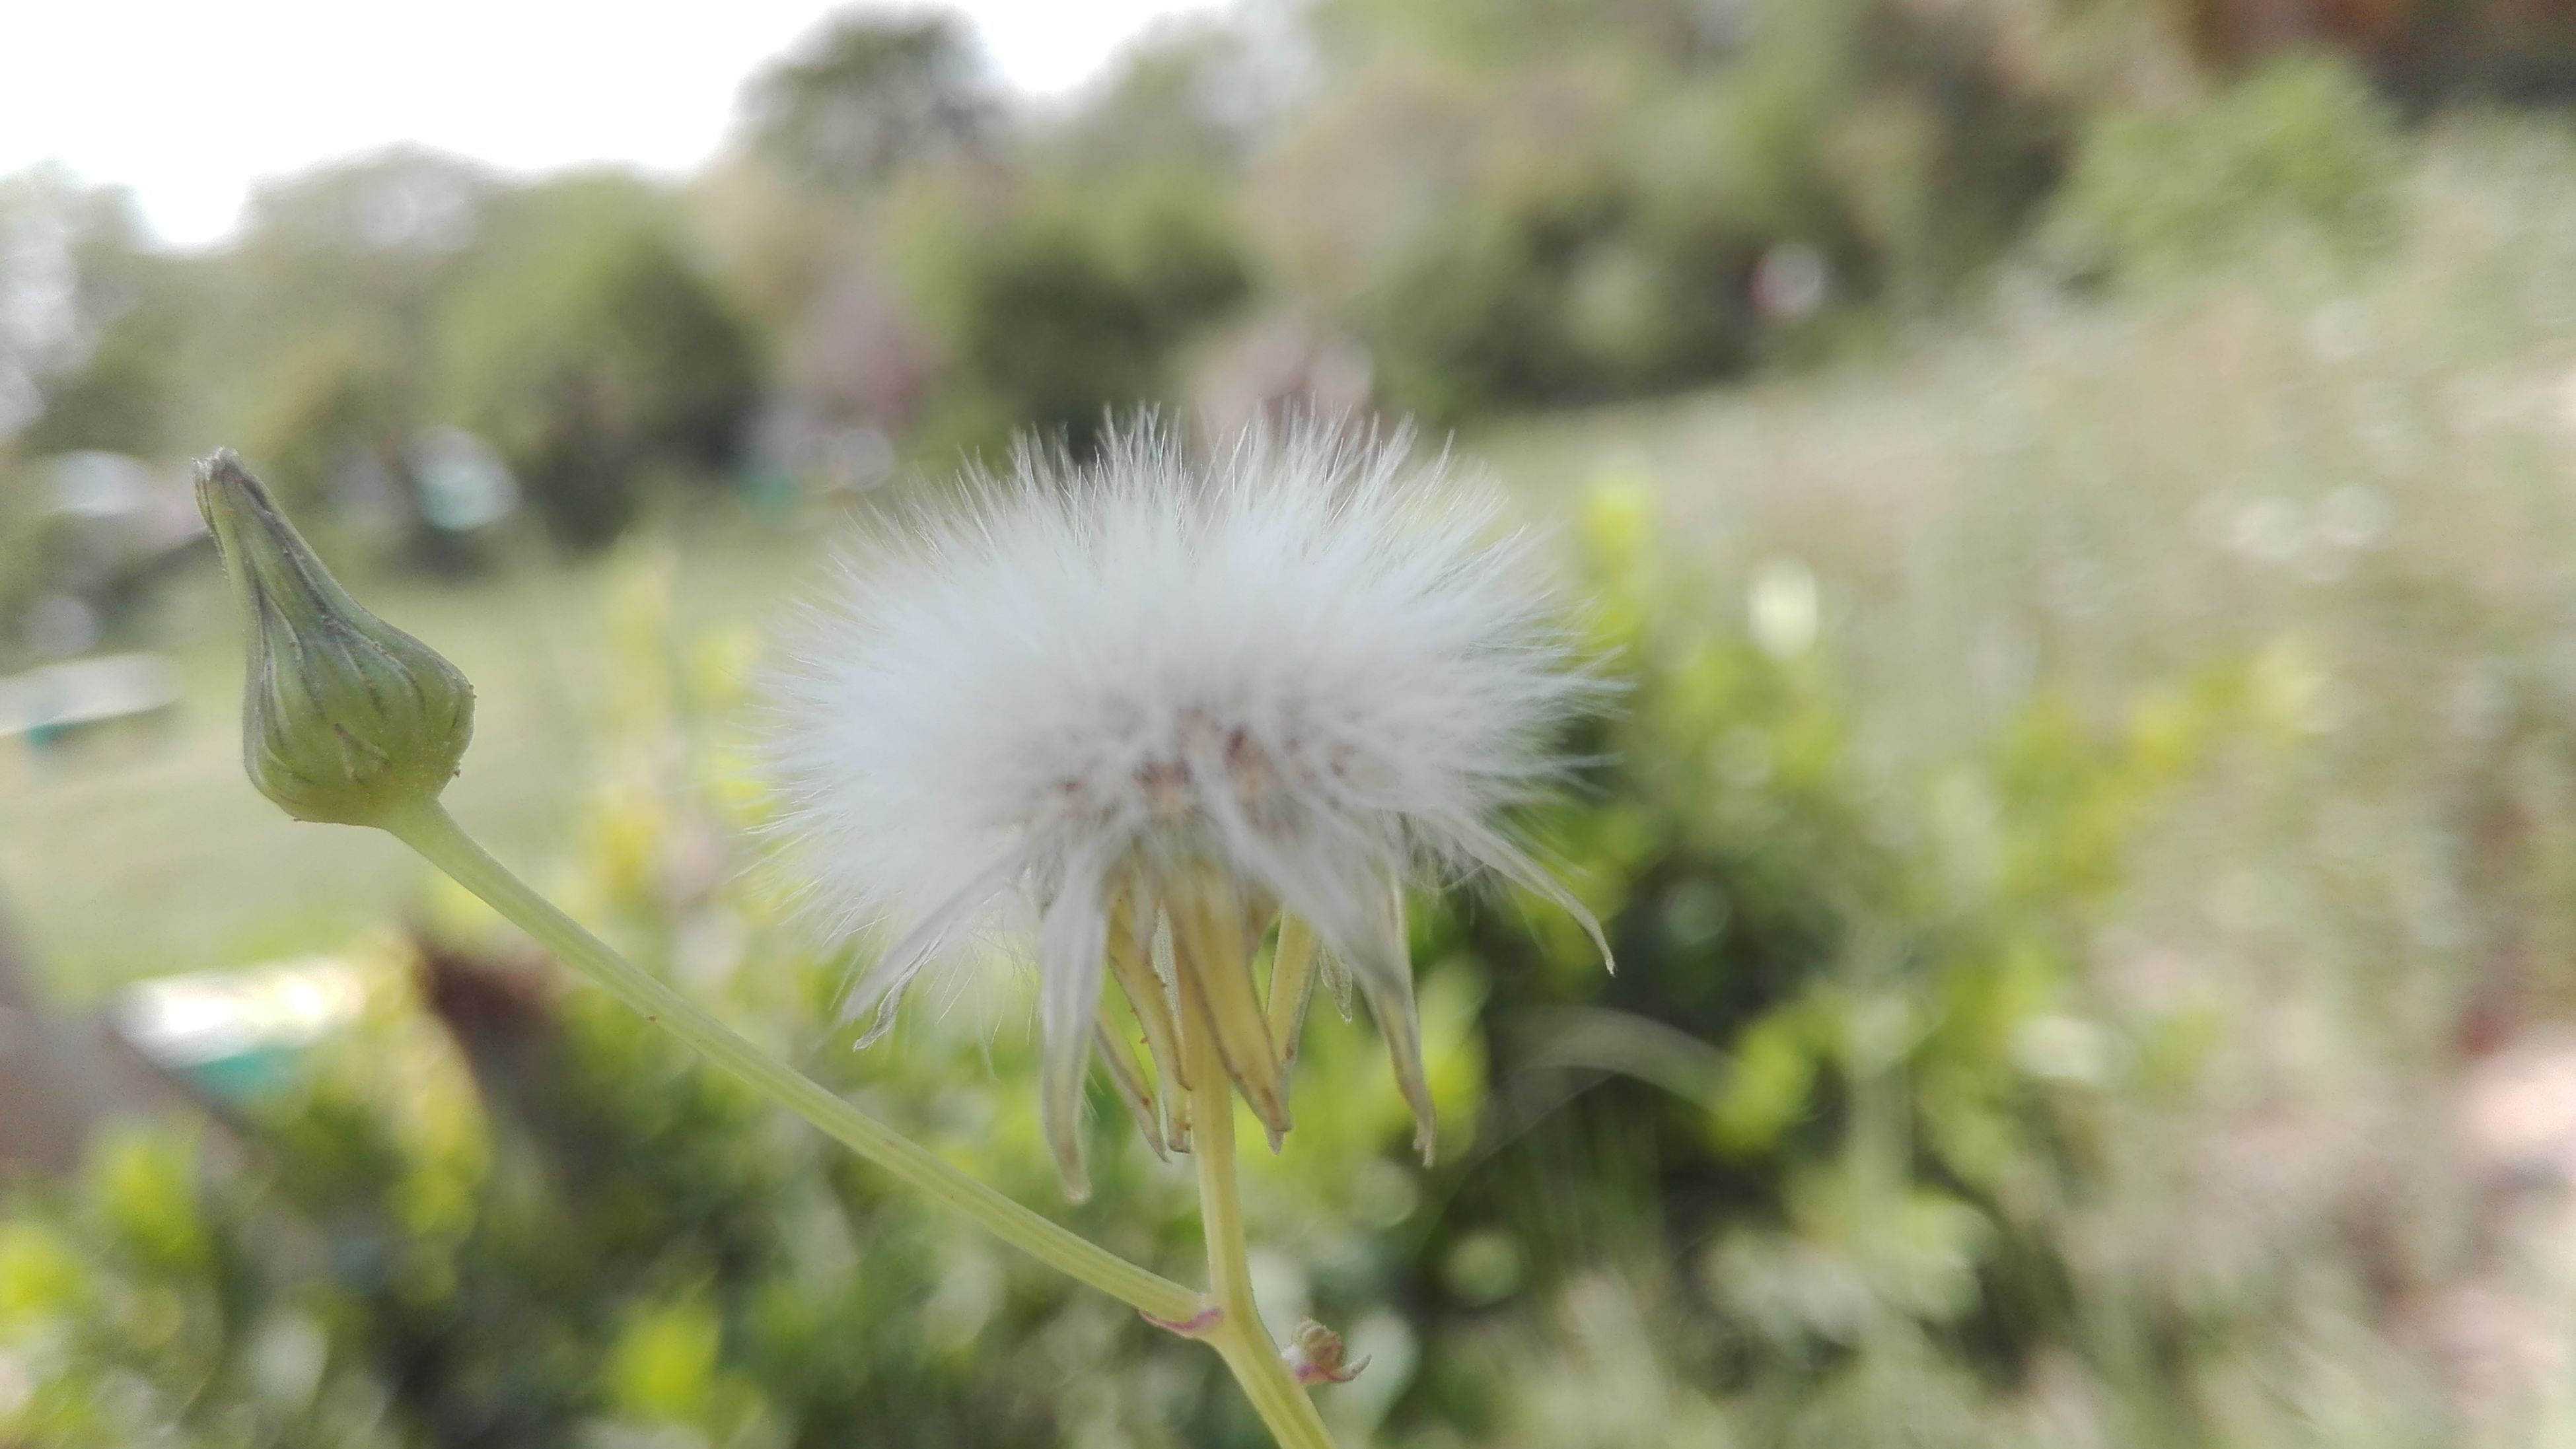 dandelion, flower, growth, fragility, freshness, focus on foreground, close-up, nature, beauty in nature, flower head, plant, stem, wildflower, uncultivated, selective focus, single flower, softness, day, field, seed